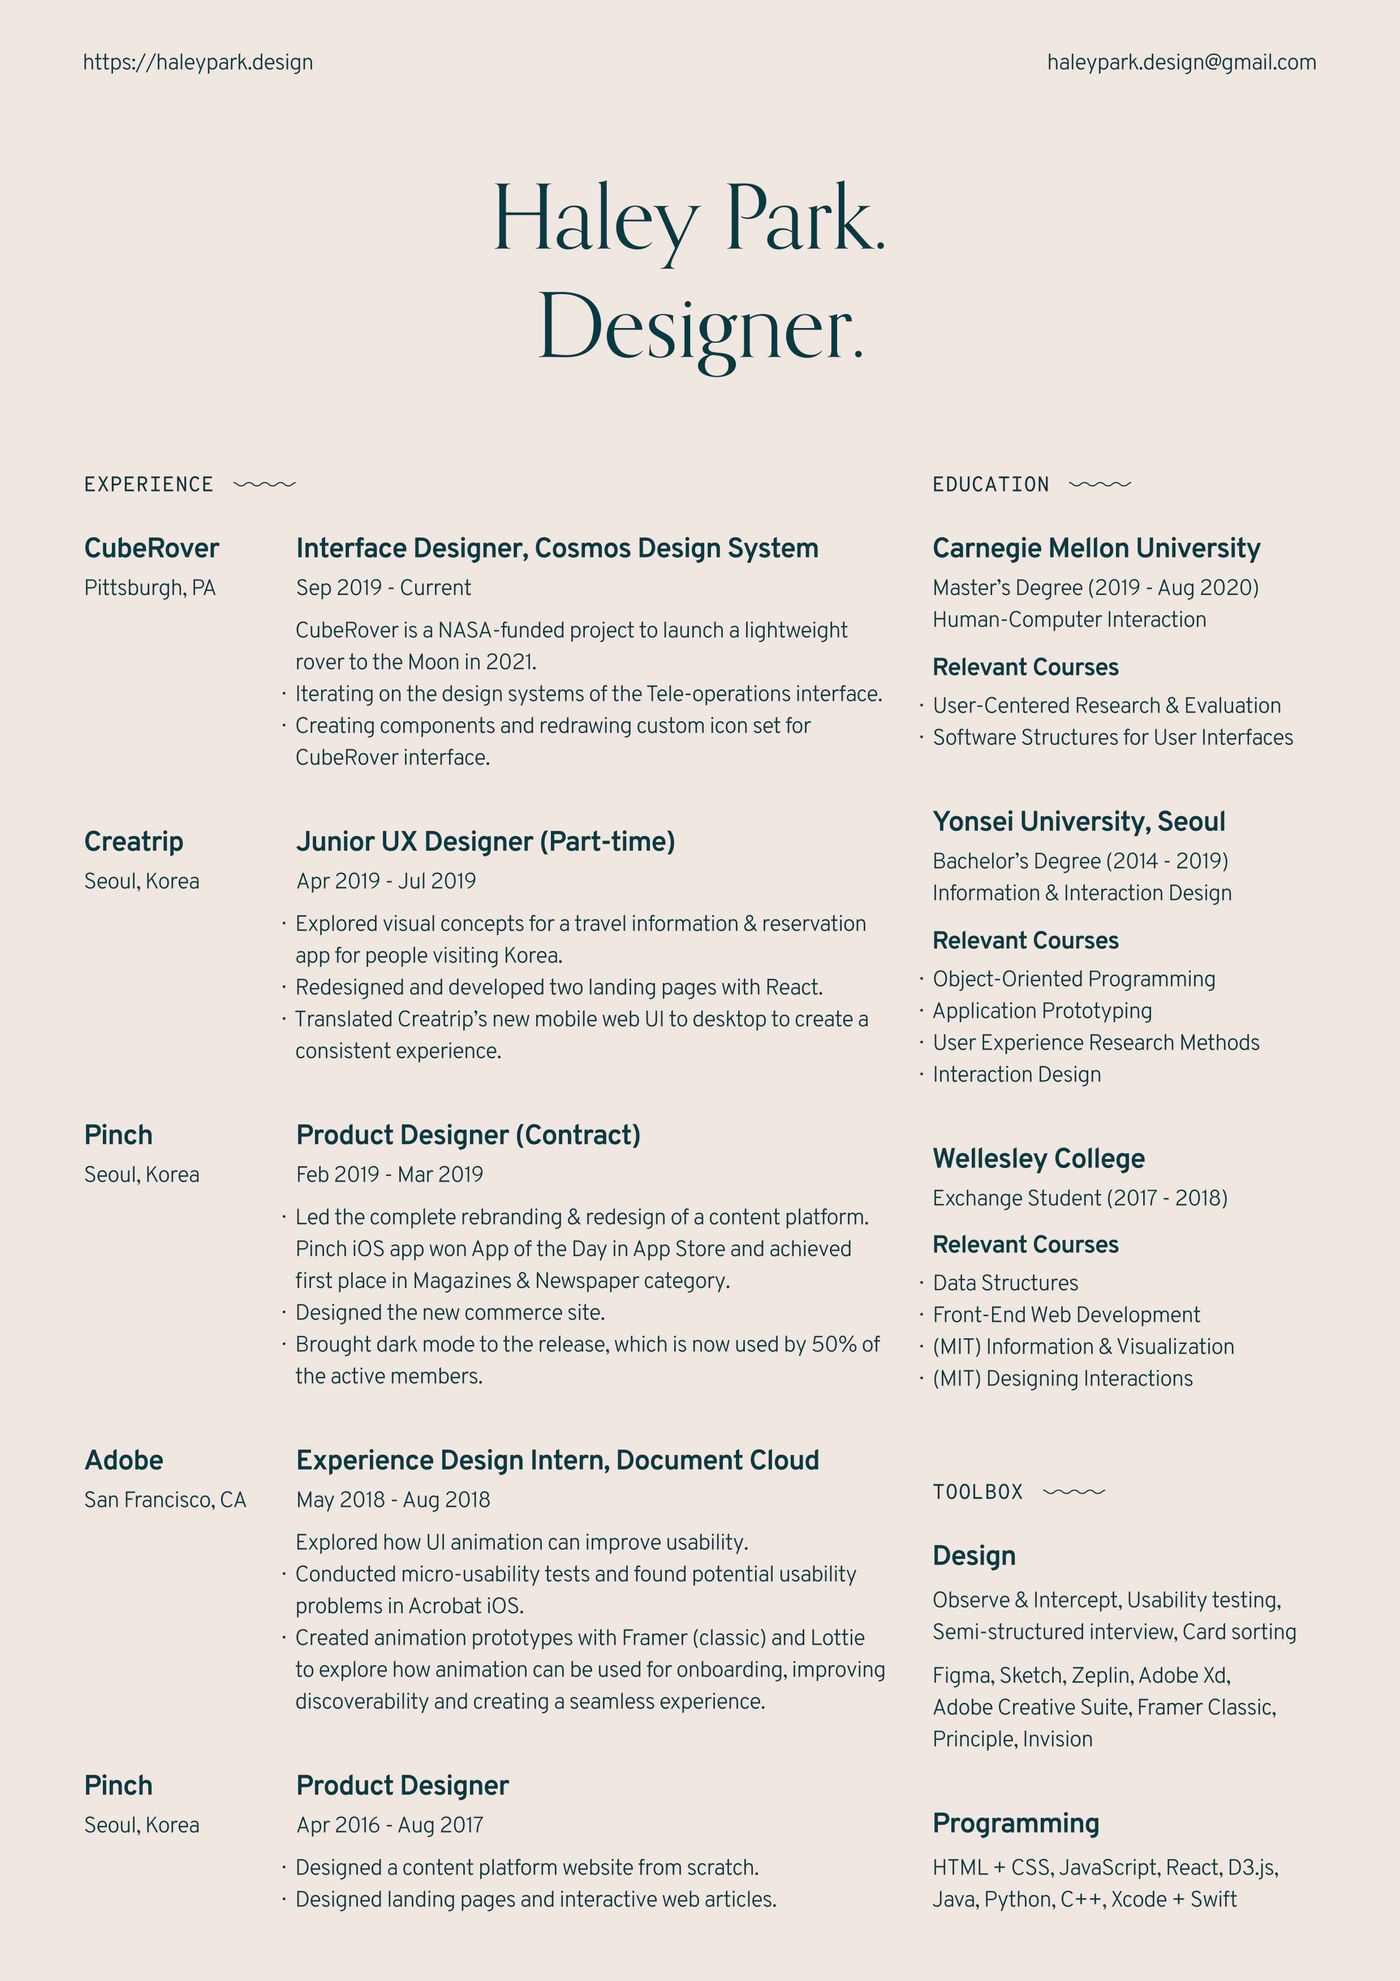 7 Great Student Resumes 2020 In 2020 Beautiful Resume Student Resume Resume